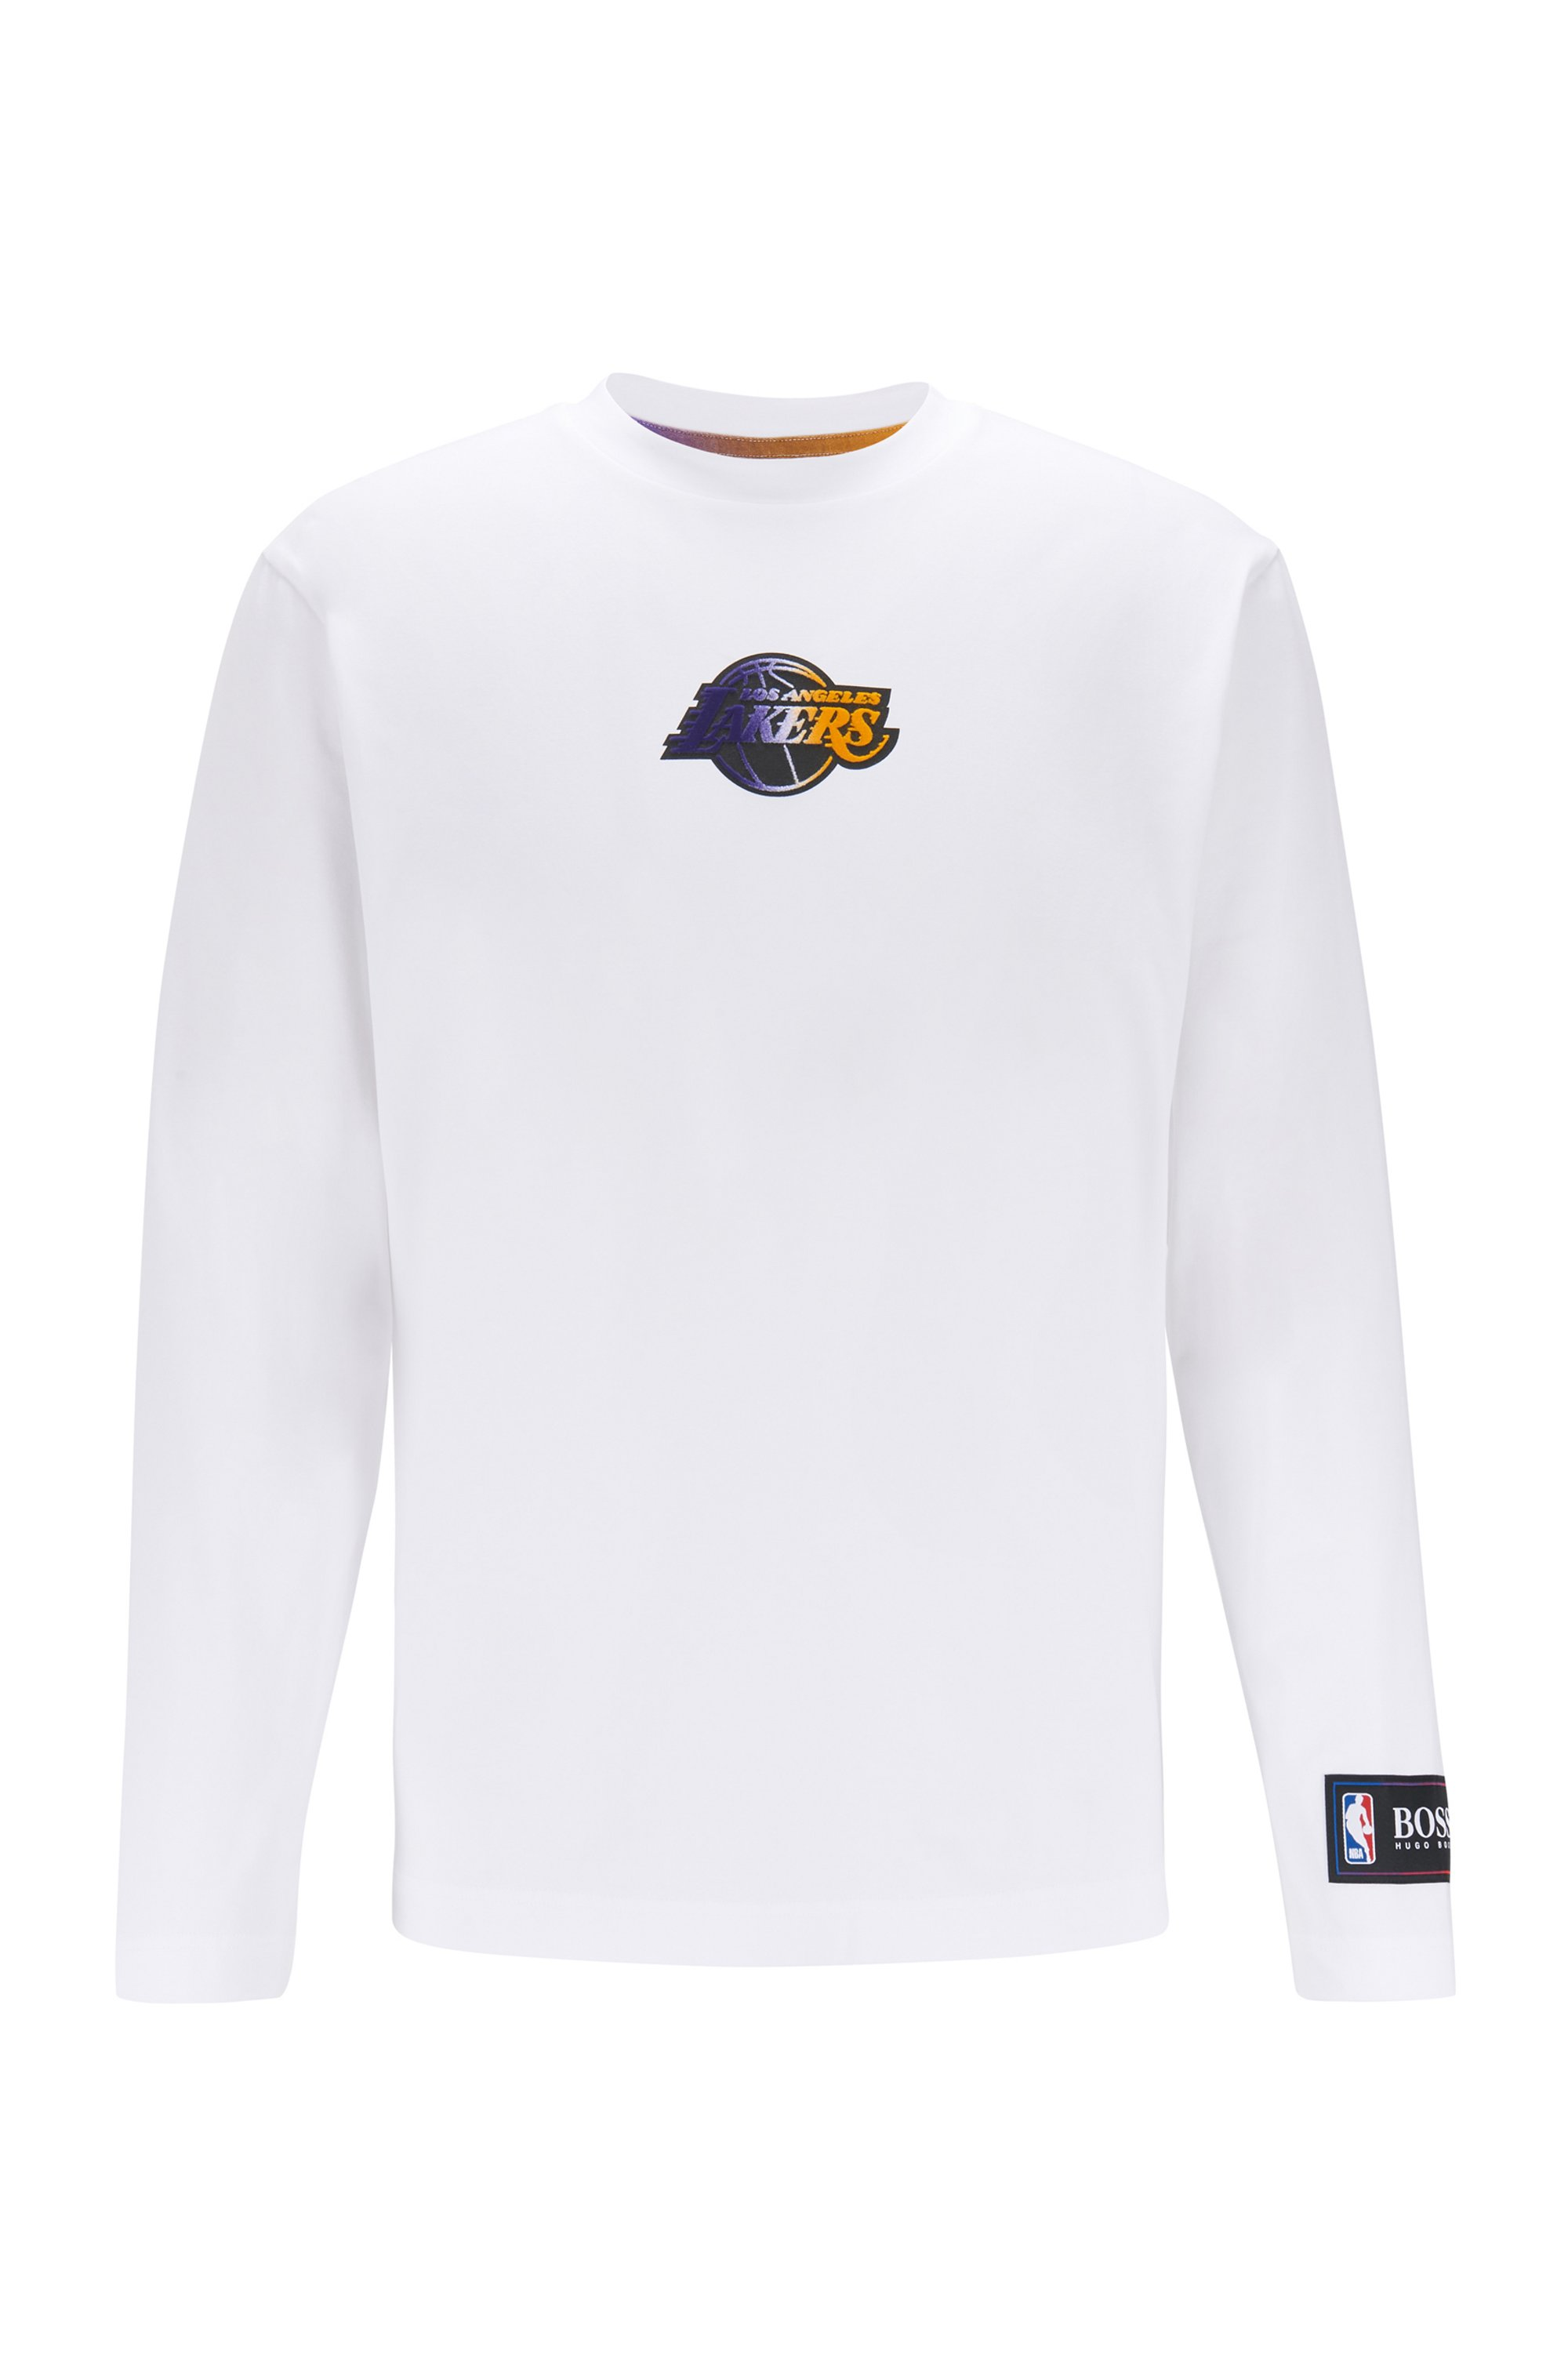 Long-sleeved T-shirt from BOSS x NBA with team logo, White